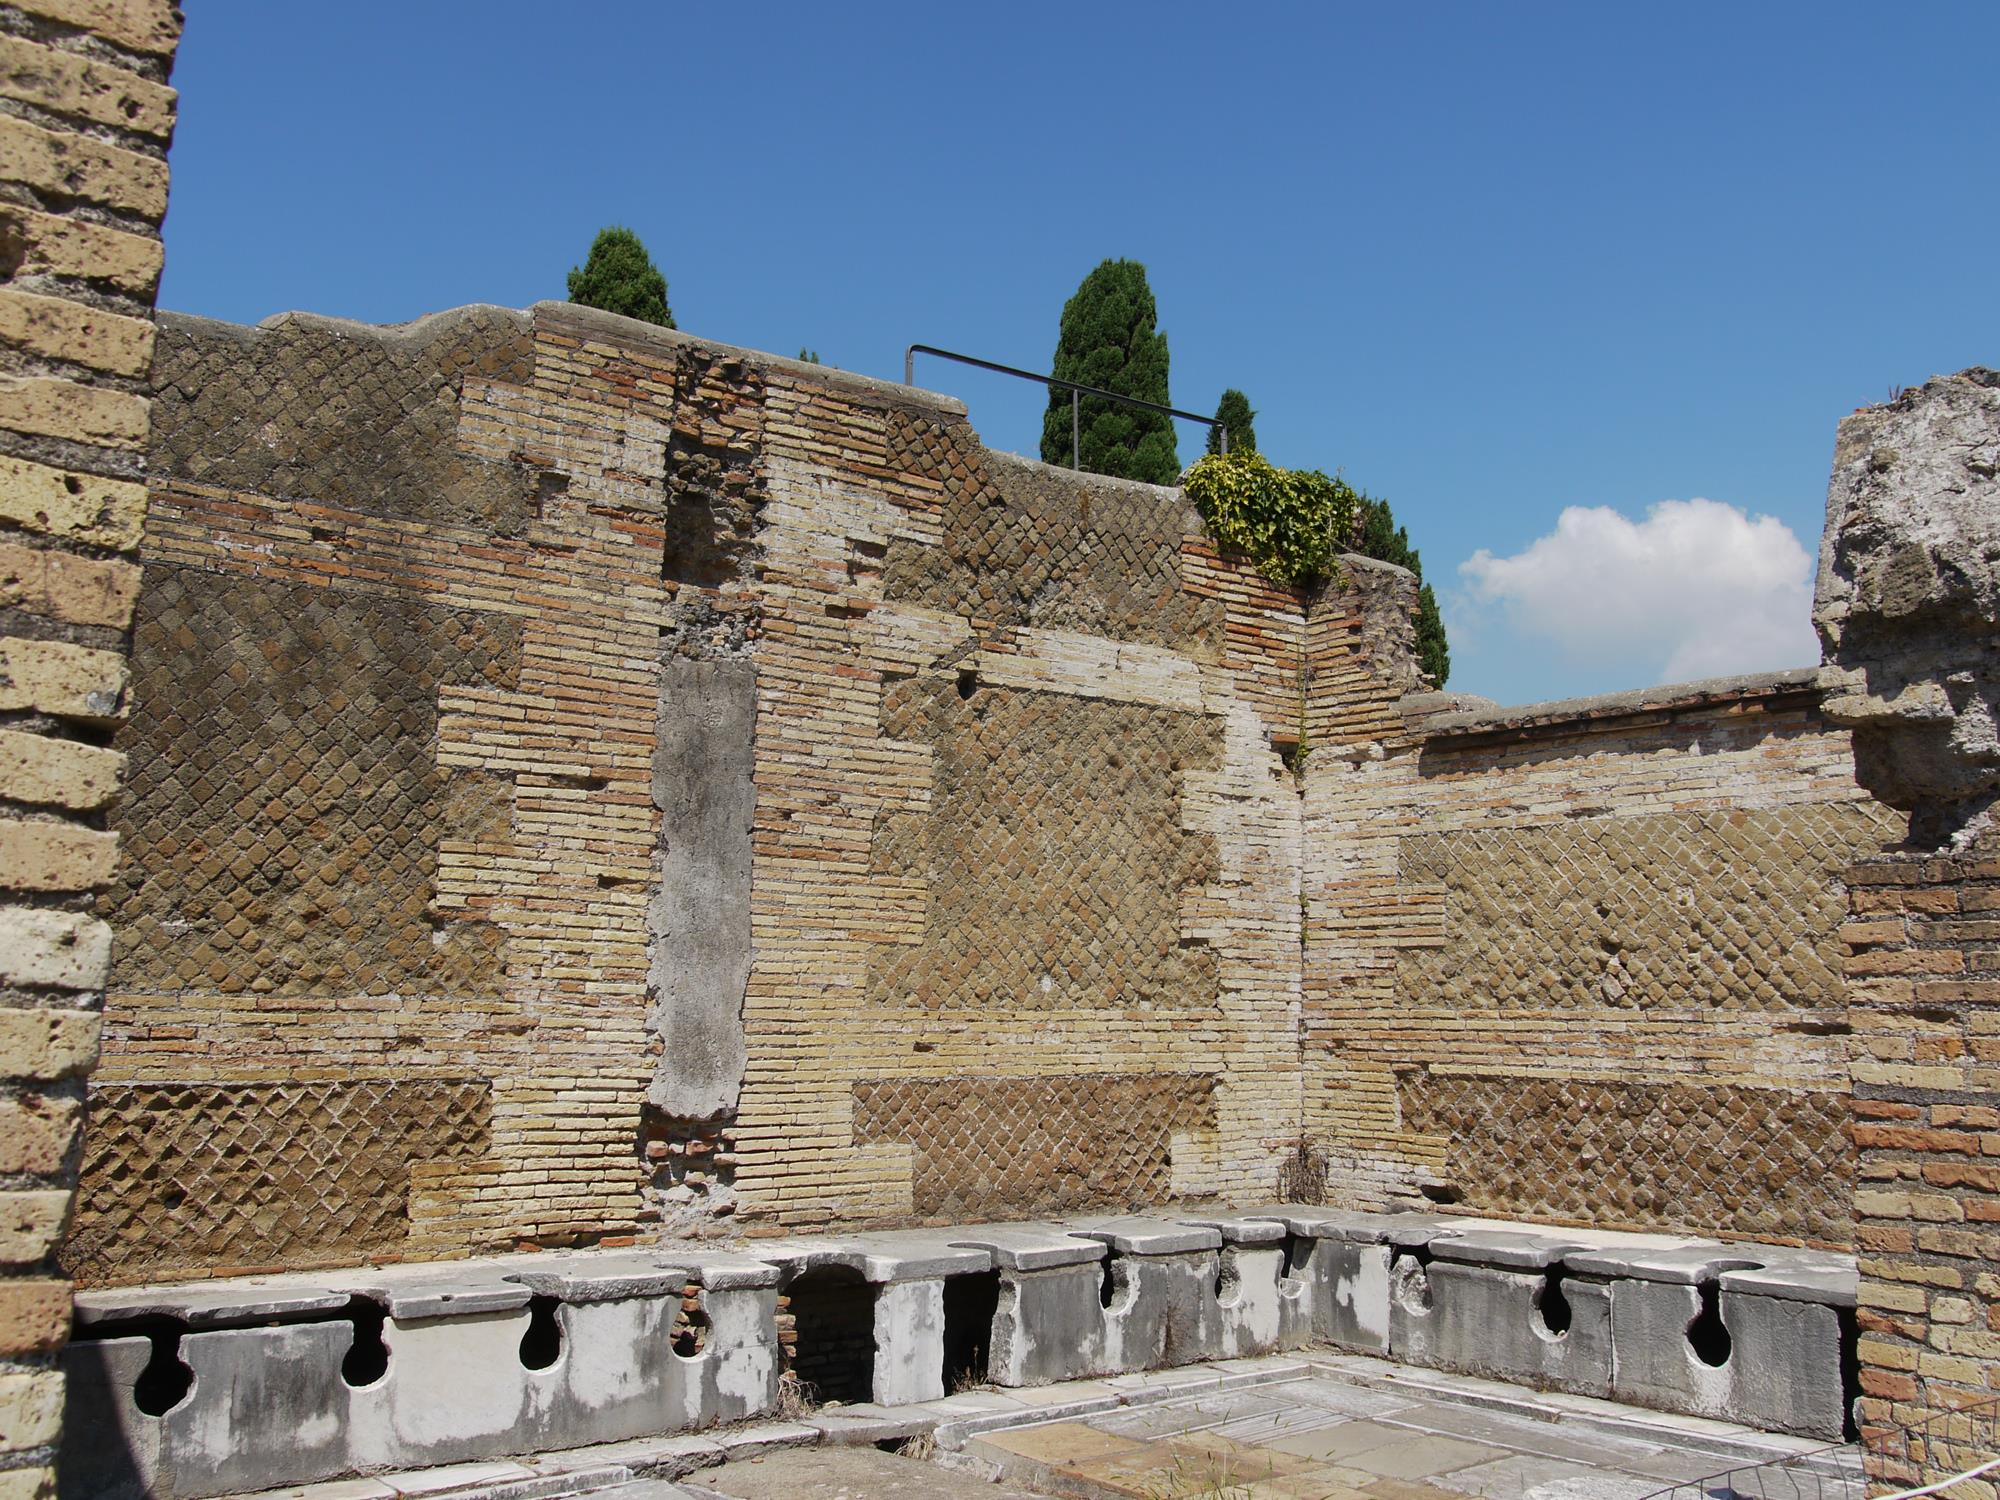 Ancient Roman toilets at Ostia Antica